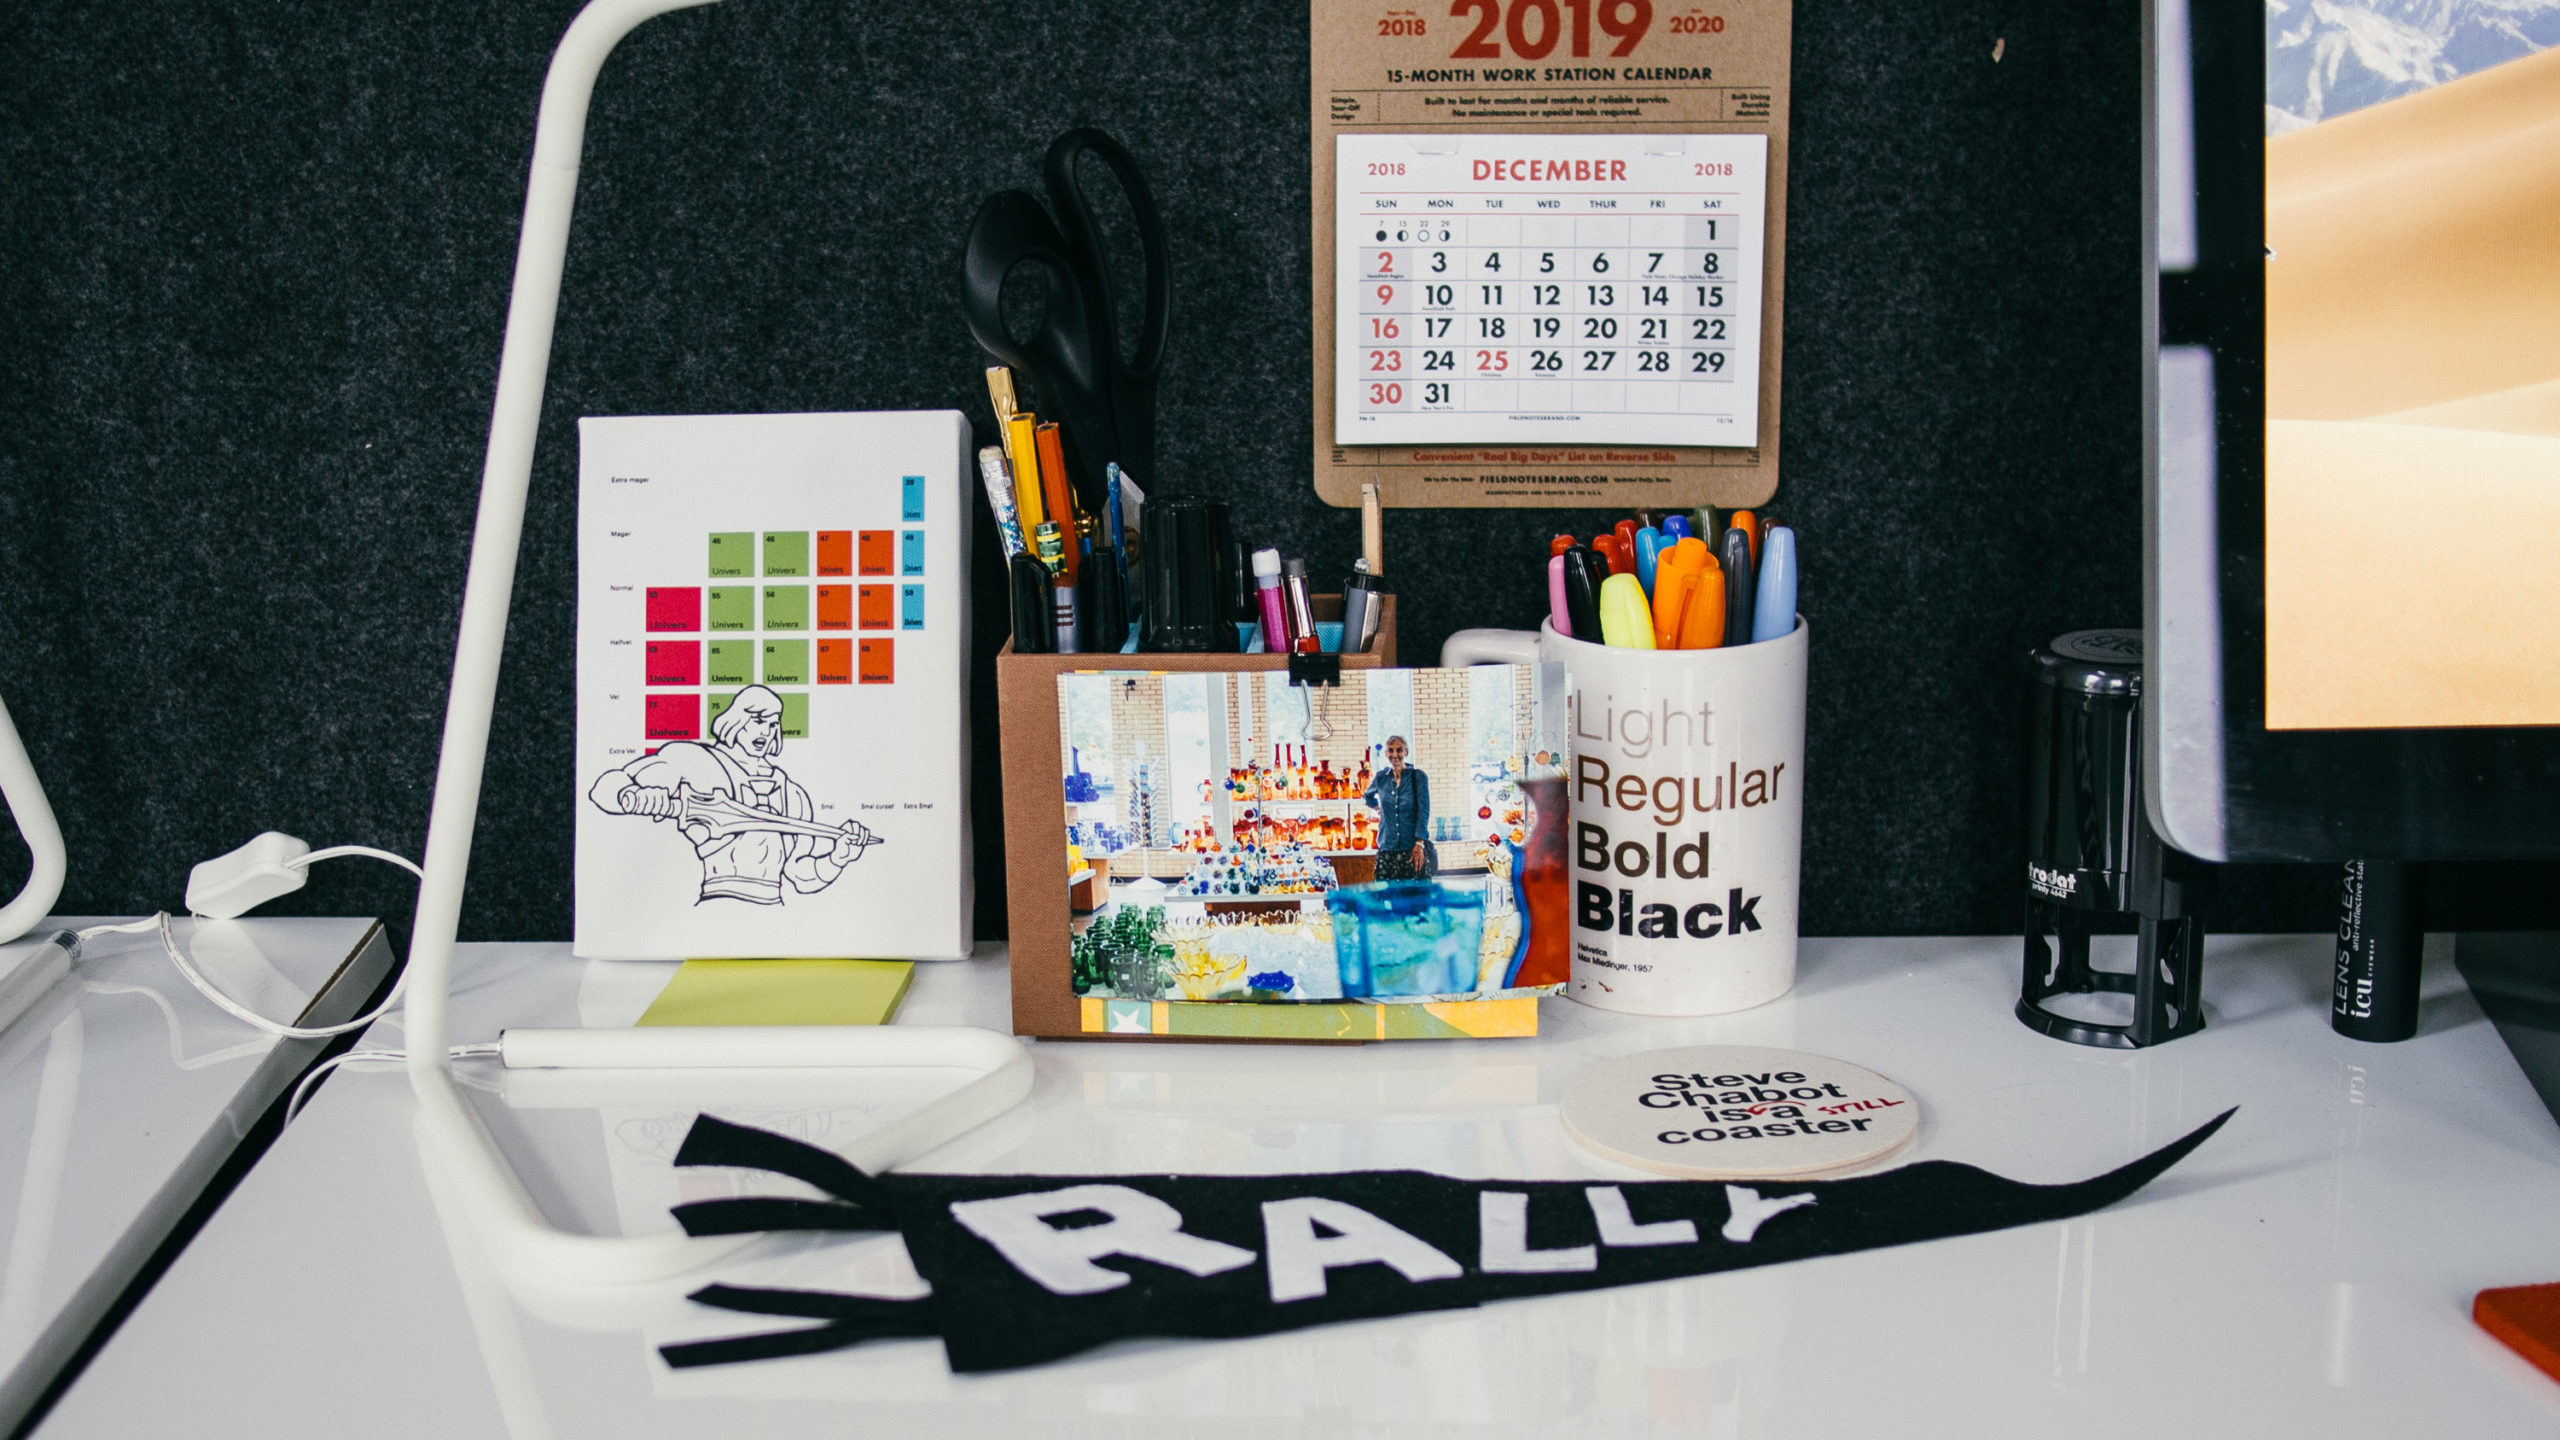 A desk with accessories like a calendar in a cup filled with pins